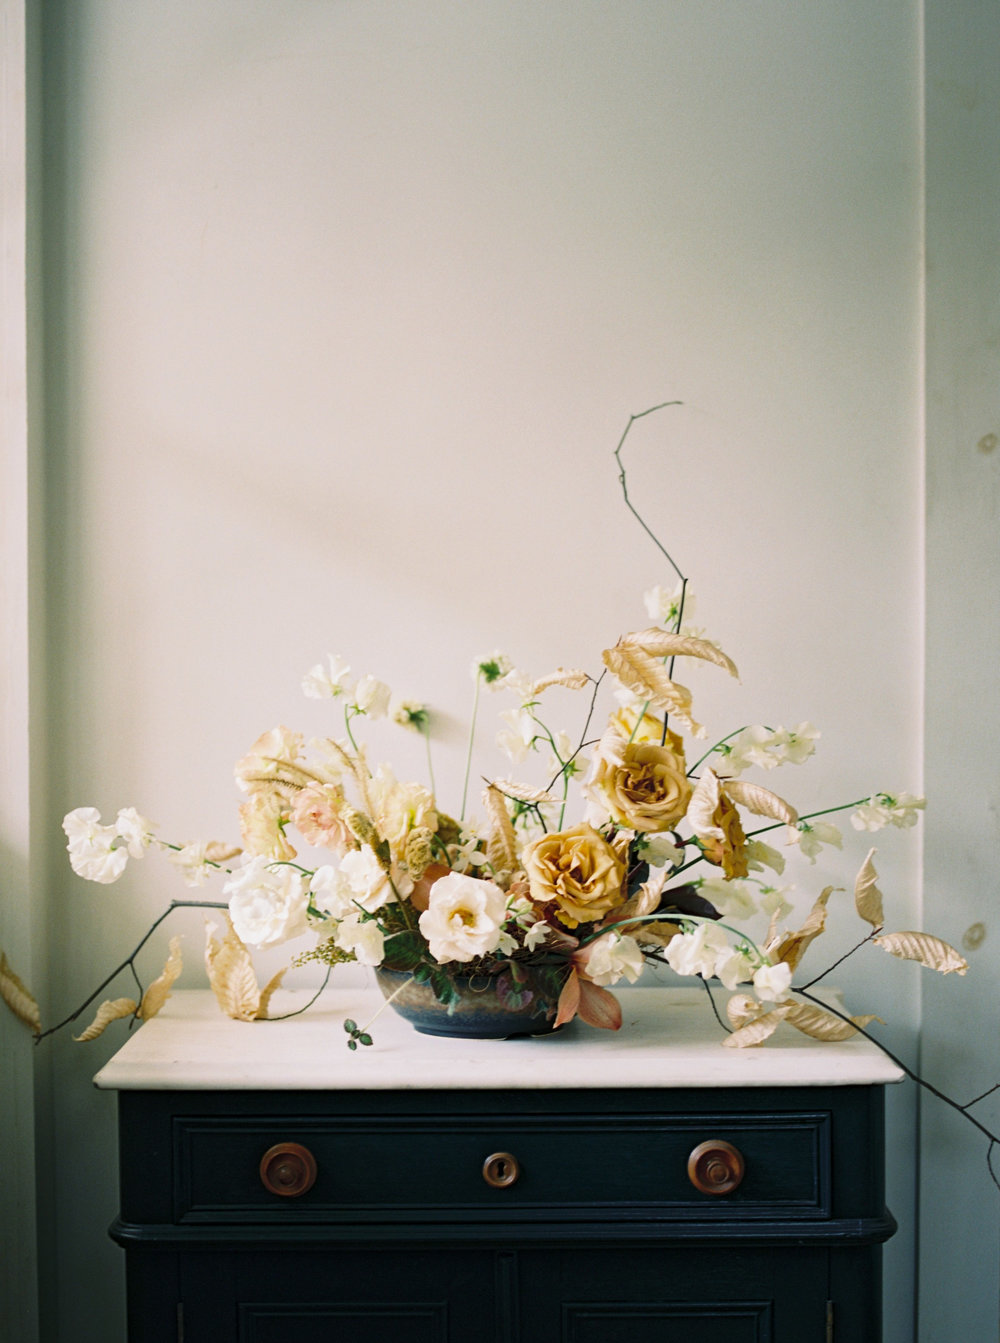 textural floral arrangement by Kelly Lenard at Foxfire Mountain House in the Catskills, NY